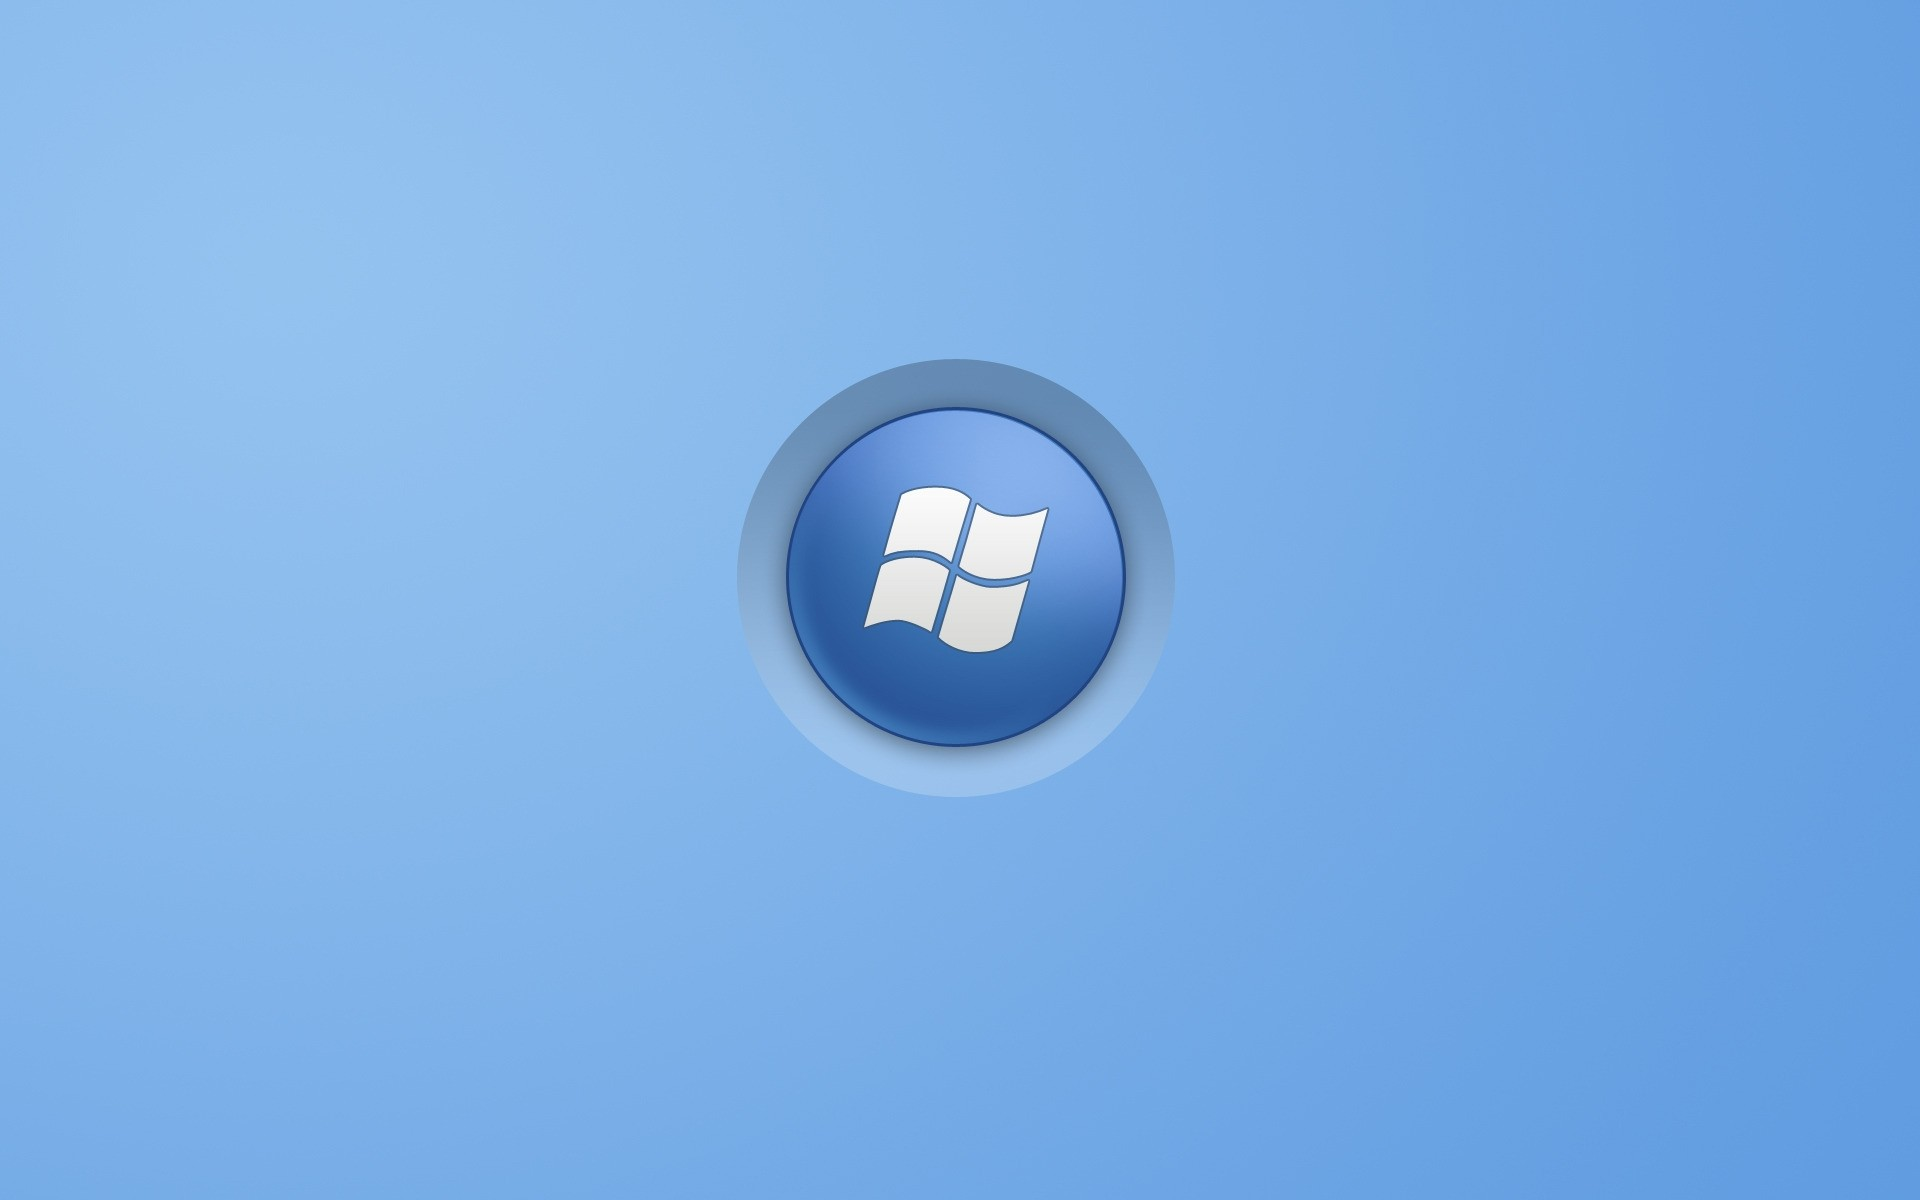 windows image symbol design sky desktop